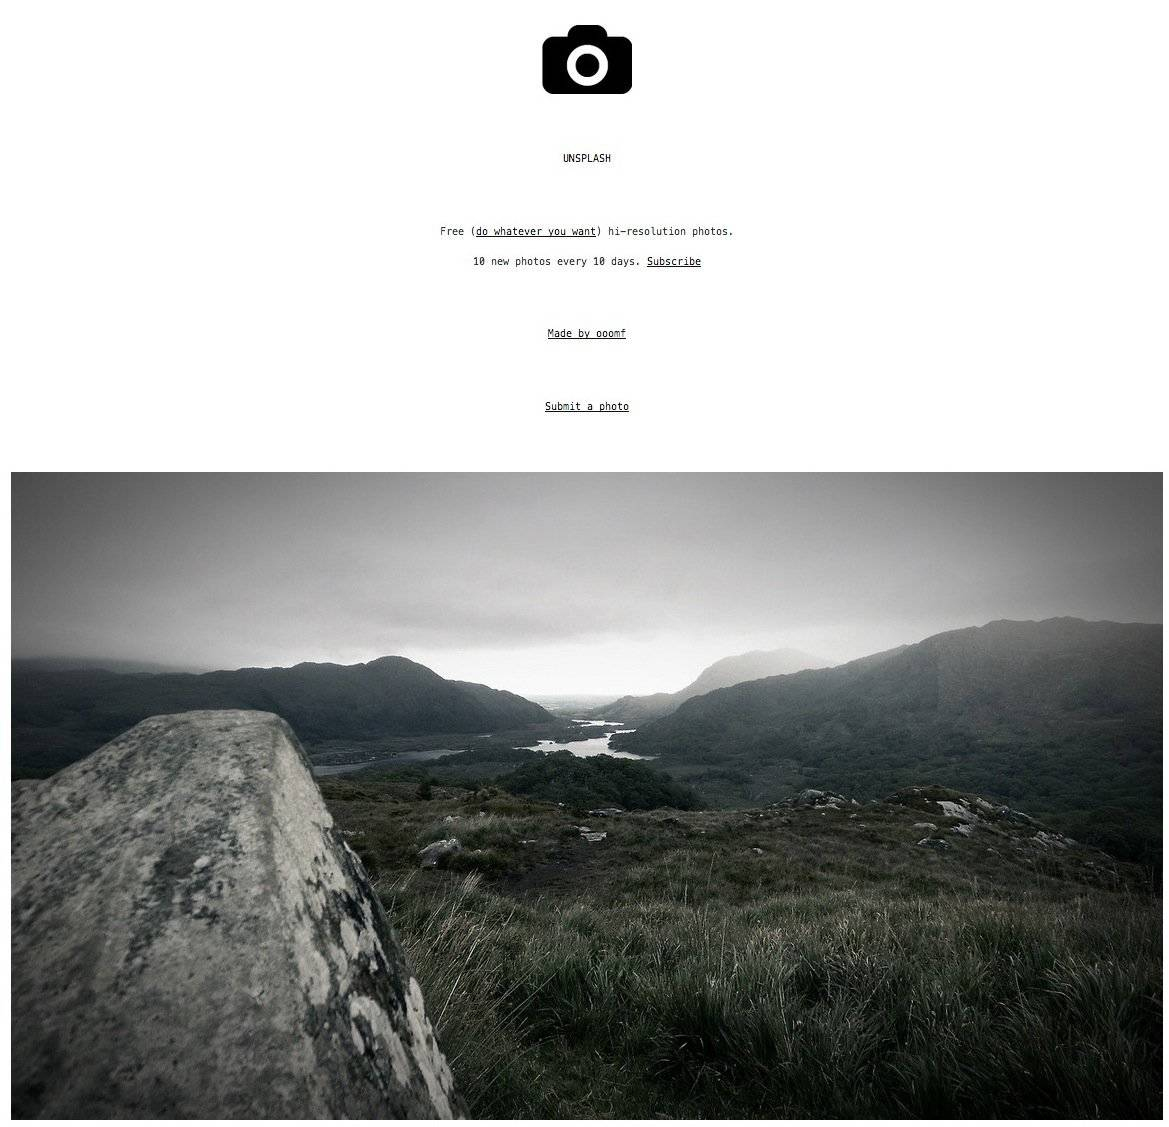 Unsplash - Free Hi-Resolution Photographs - Free Stock Photography